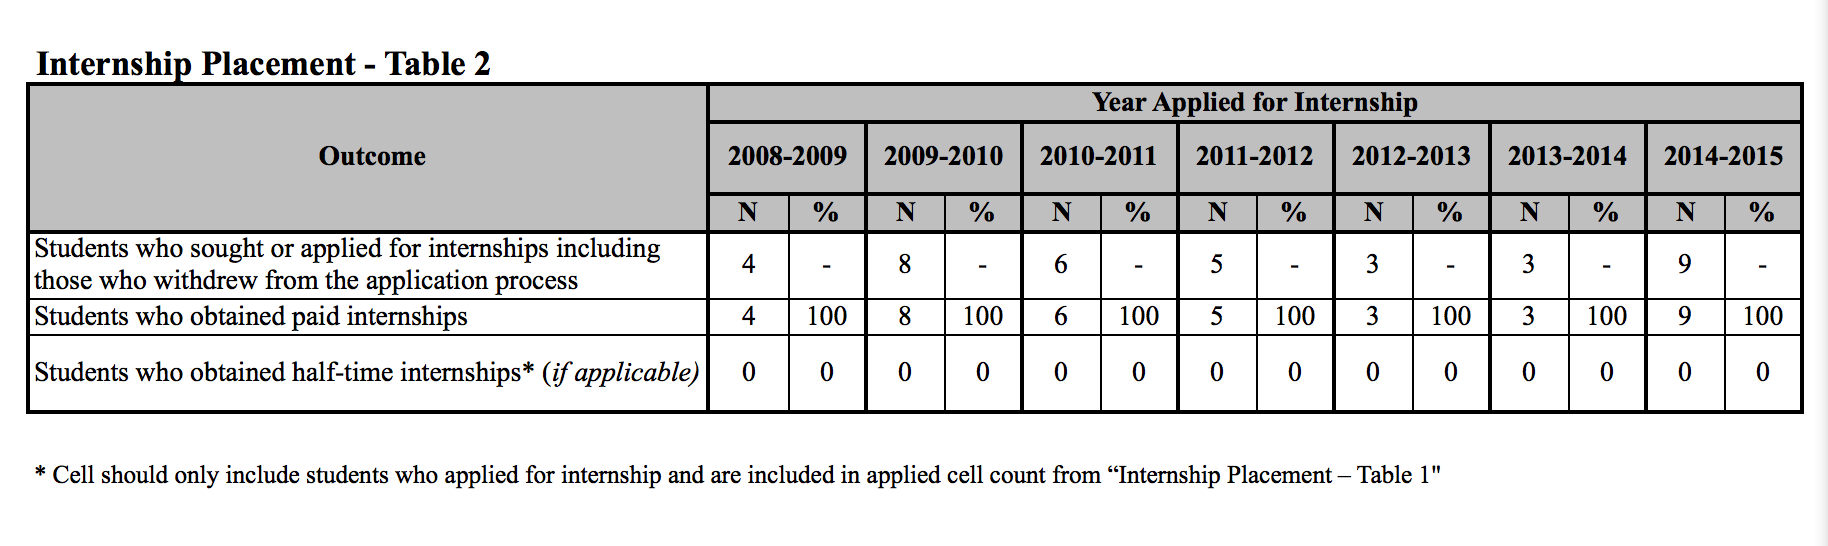 2015 SPSY Internship Placement Table 2 graphic